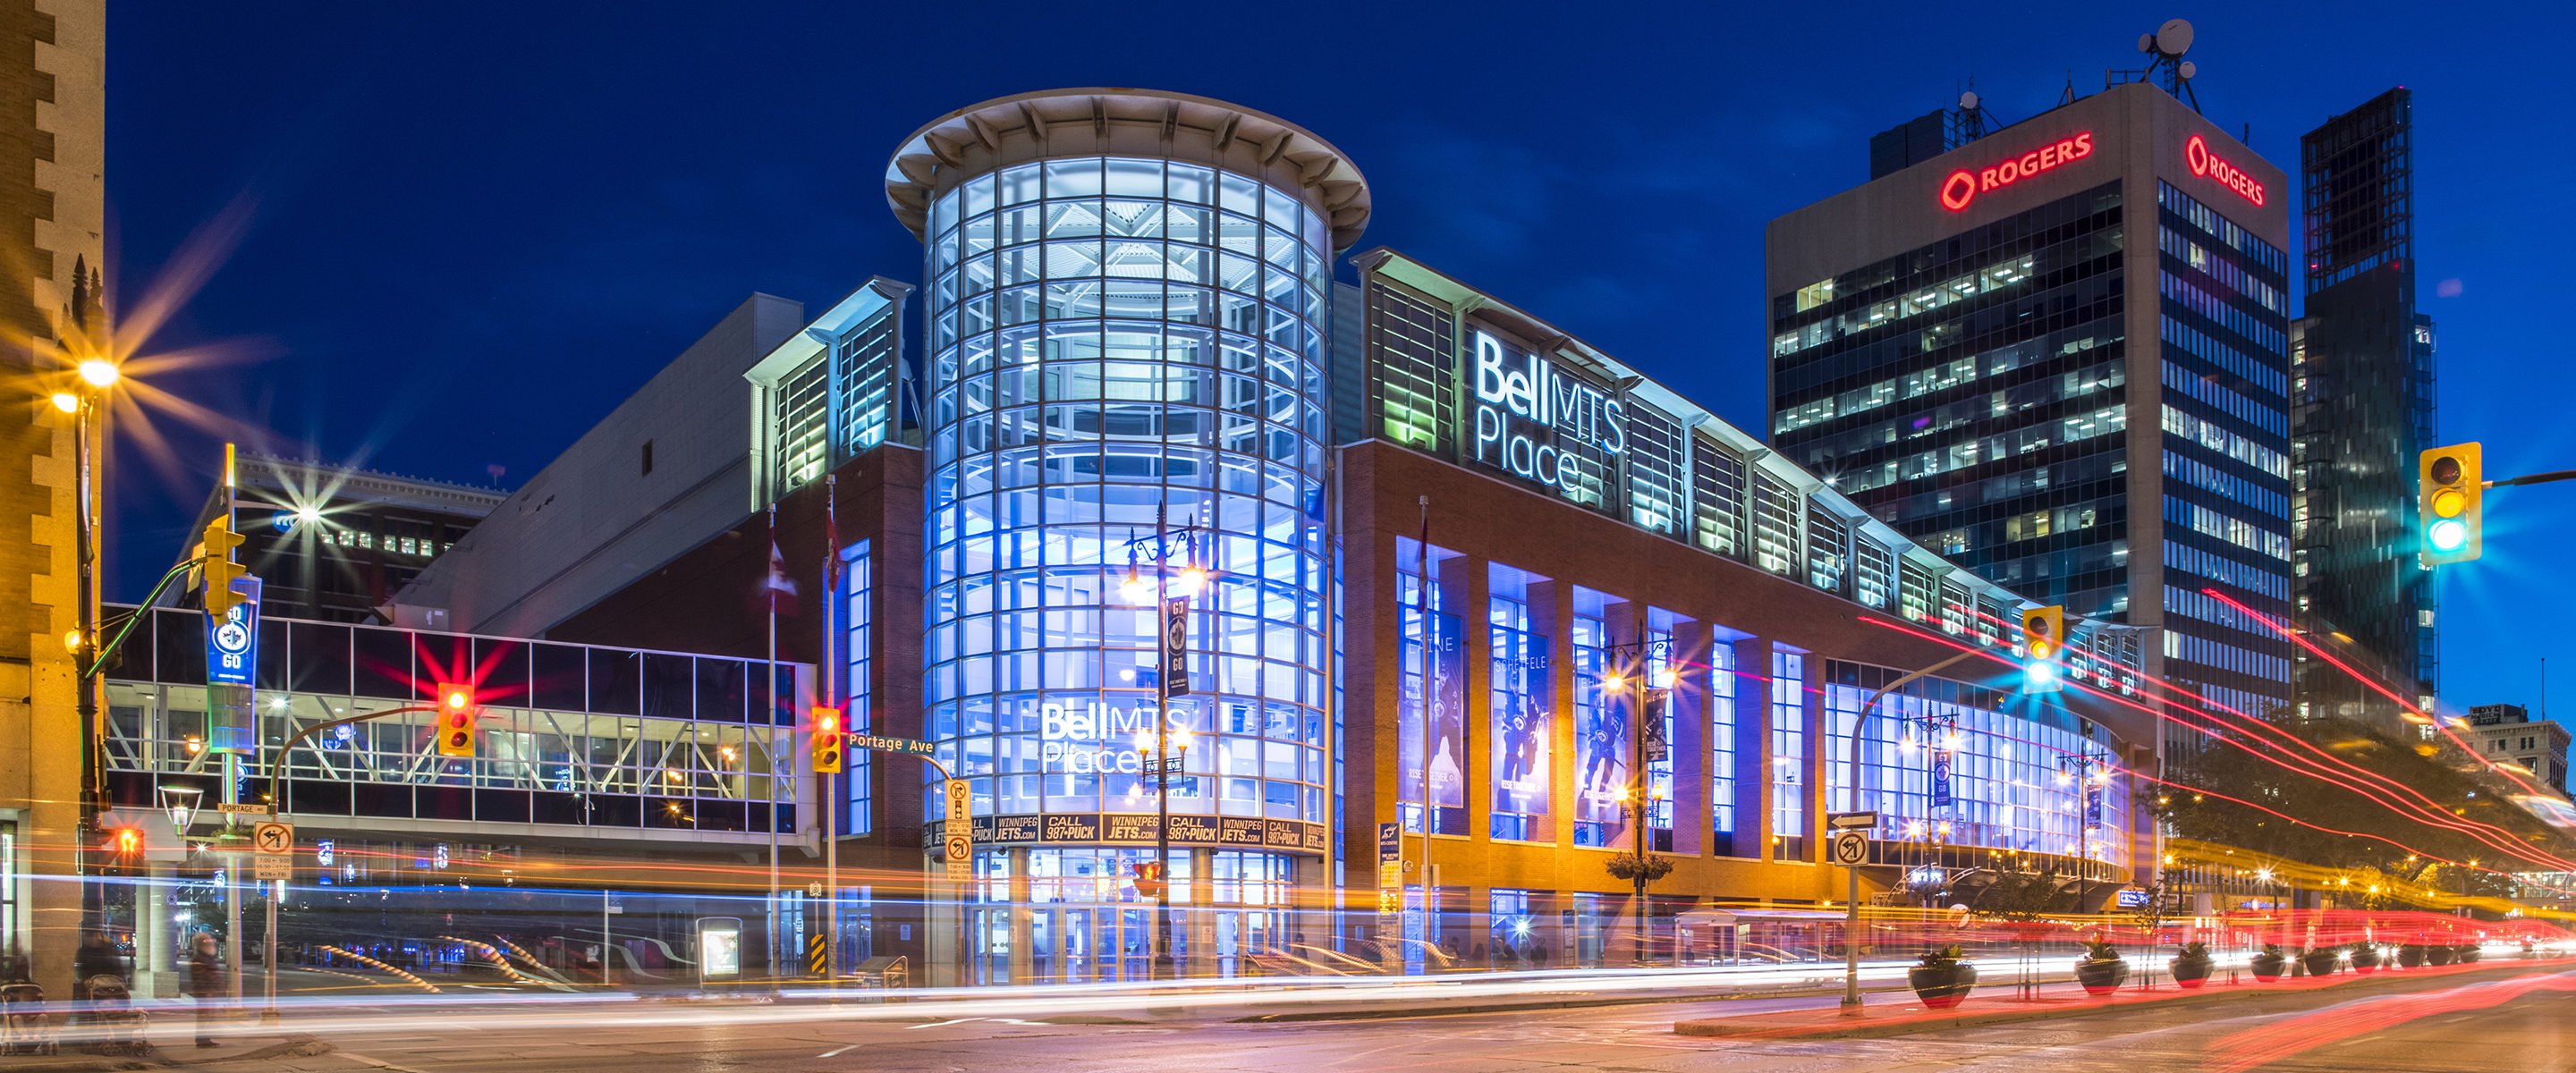 exterior of bell mts place